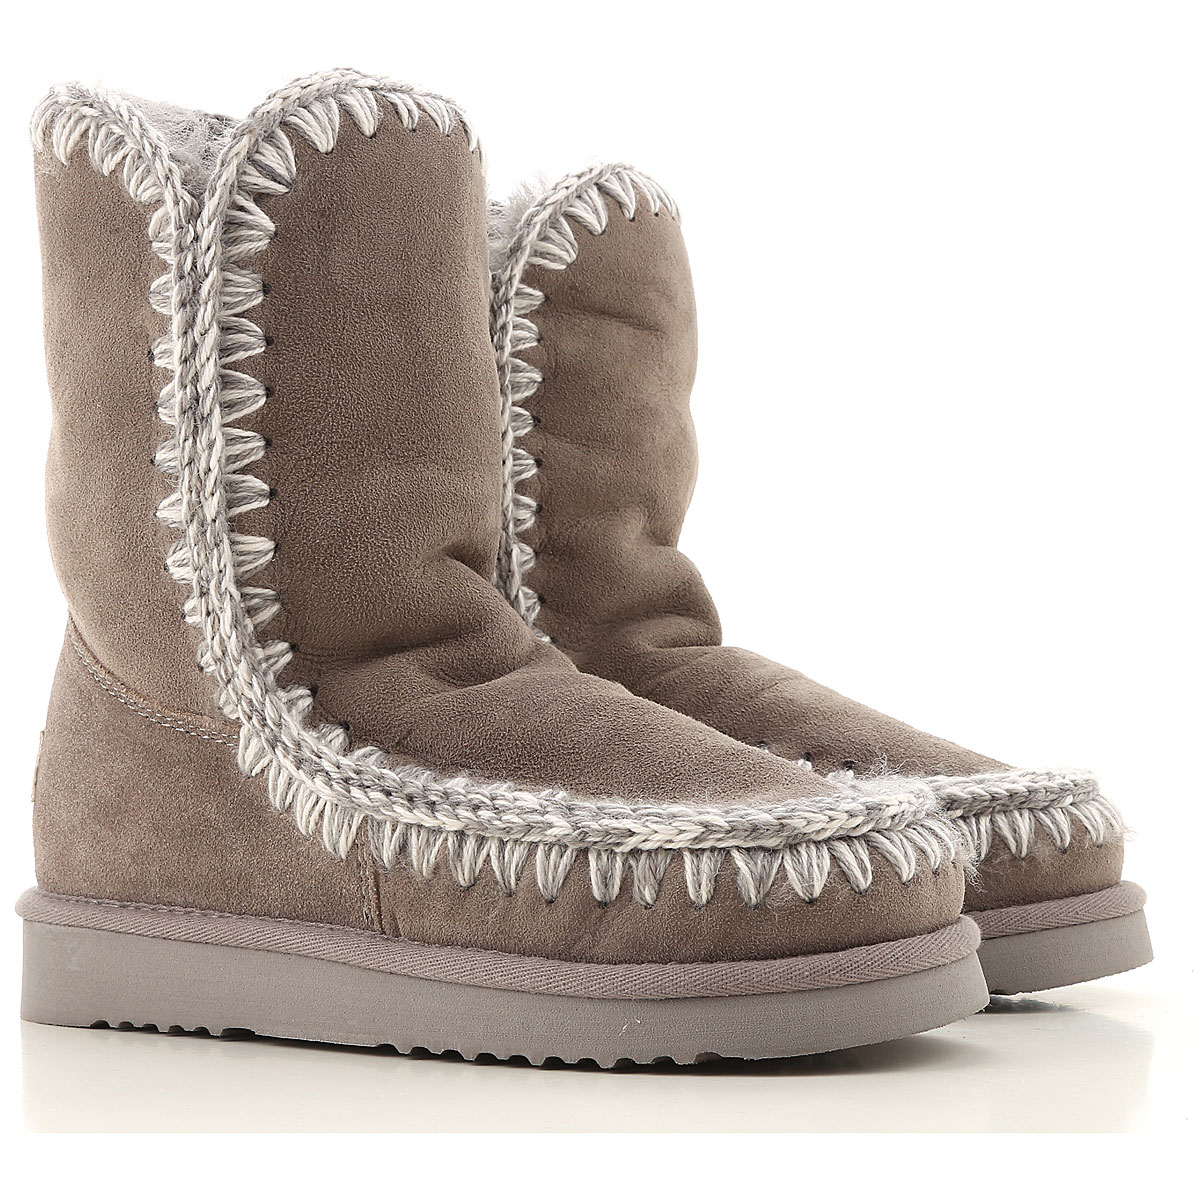 Mou Boots for Women, Booties On Sale in Outlet, Grey, sheepskin, 2019, EUR 38 - UK 5 - USA 7 EUR 36 - UK 3 - USA 5.5 EUR 37 - UK 4 - USA 6.5